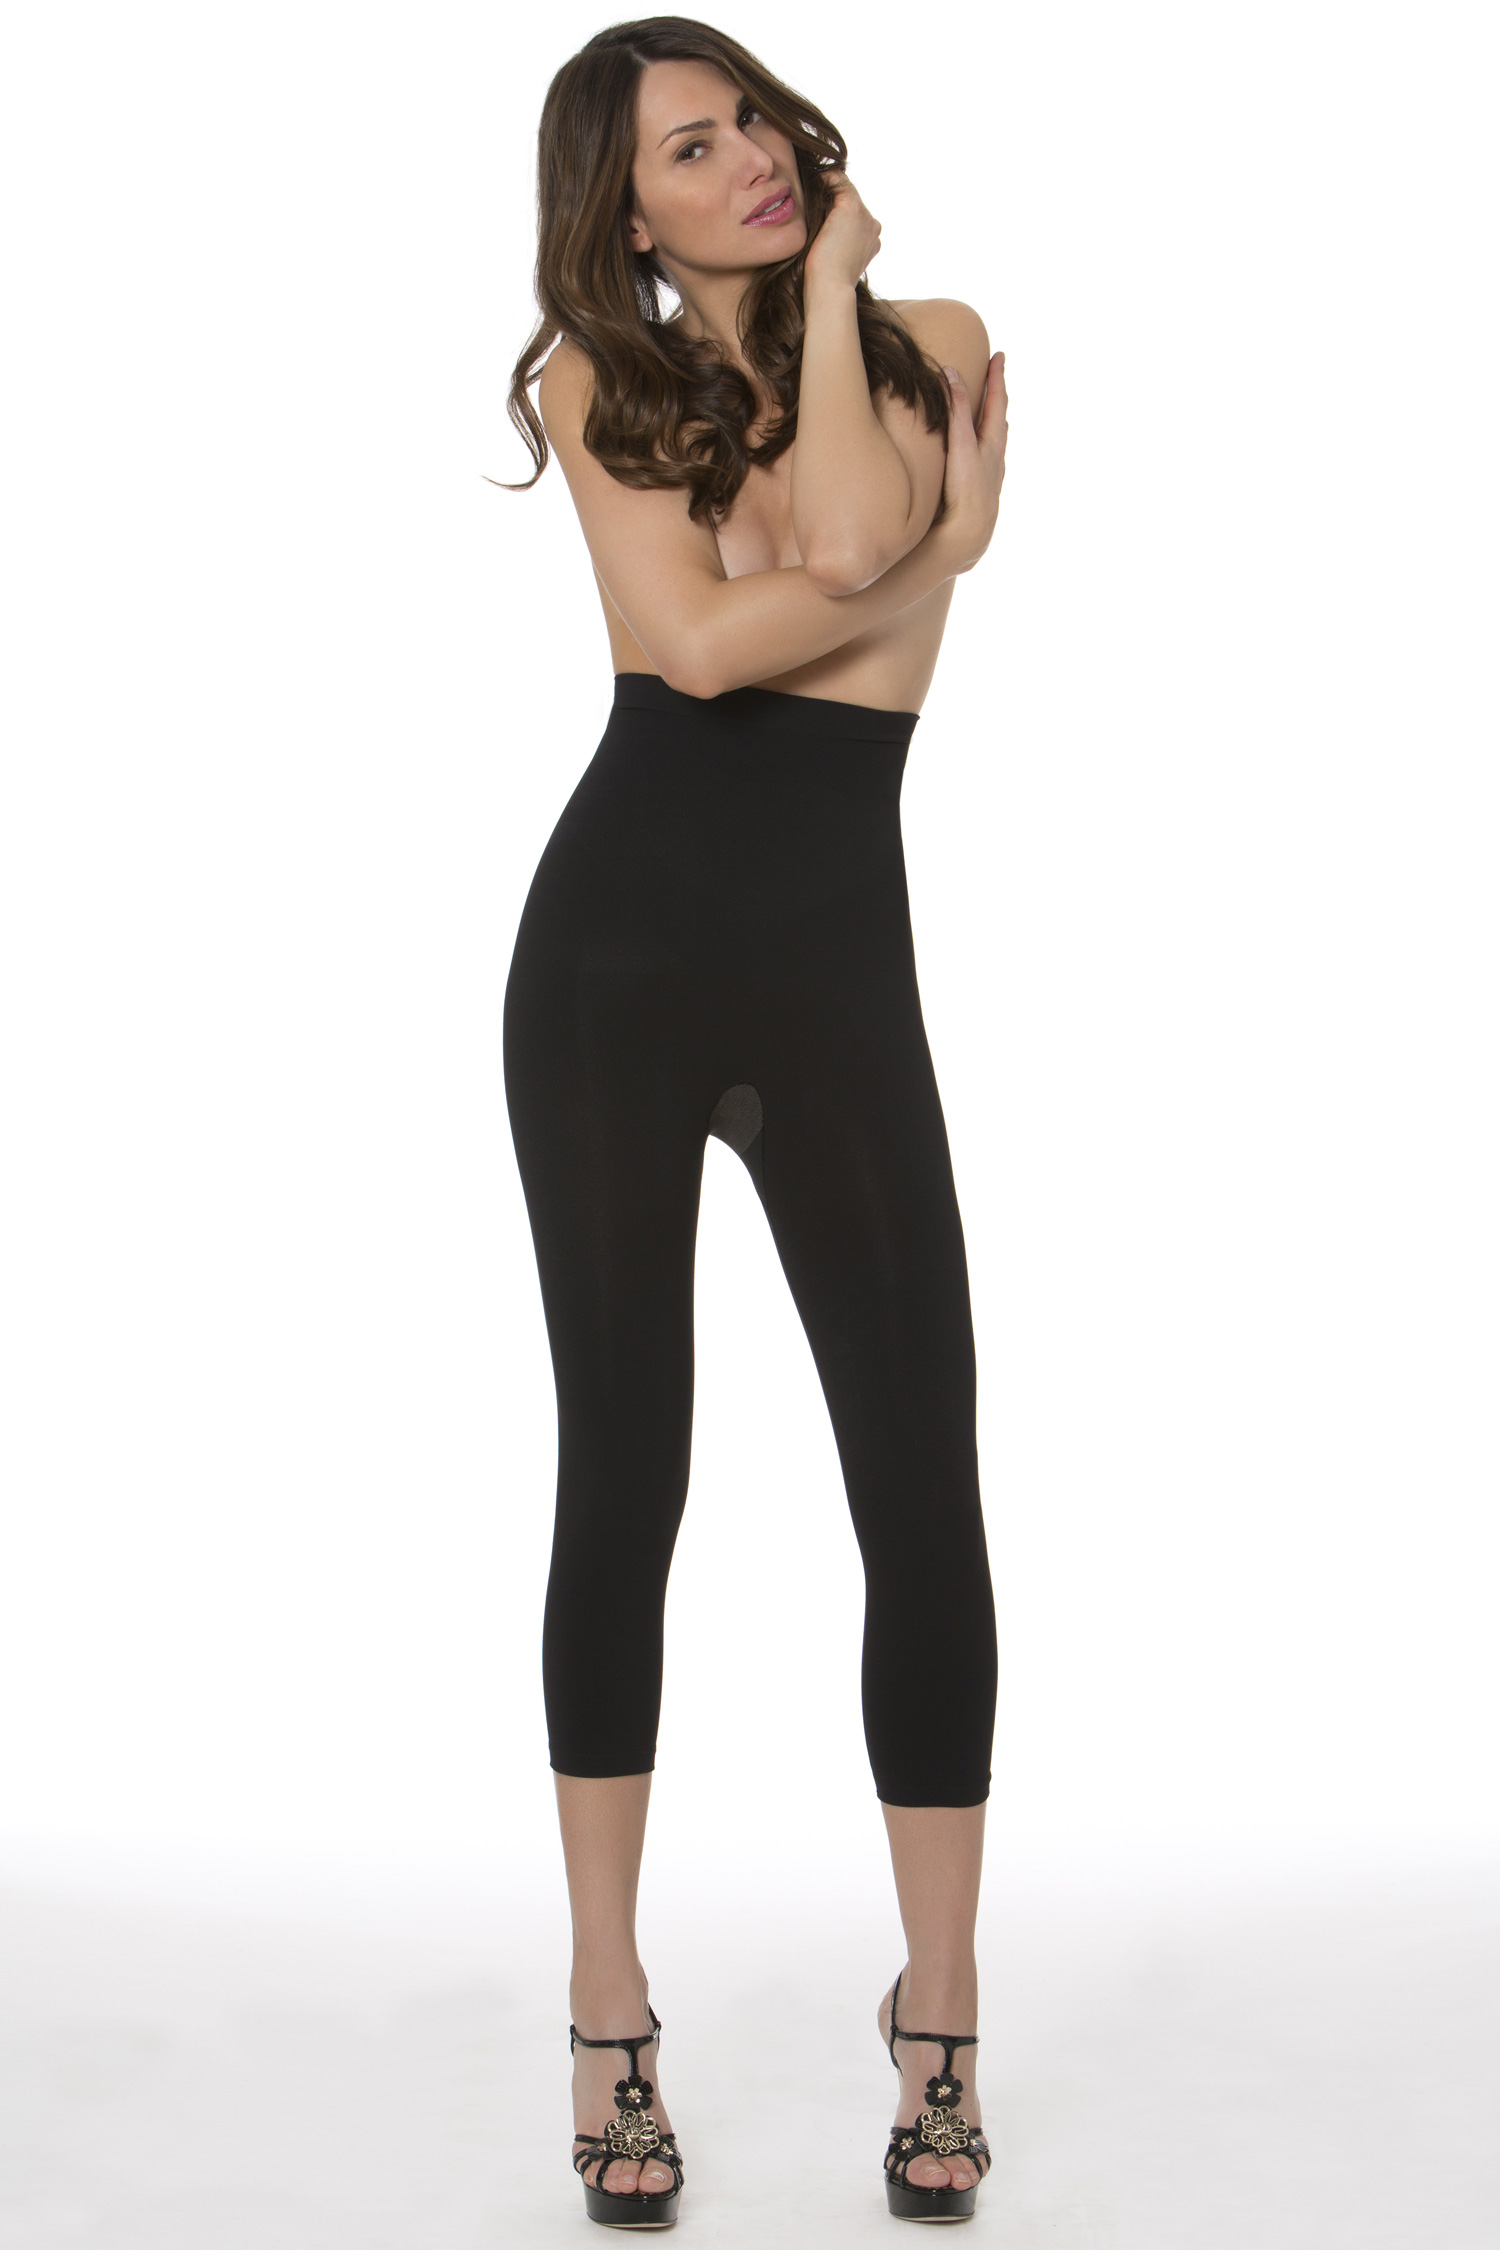 Lycra High Waisted Control and Thigh Slimmers Shapewear